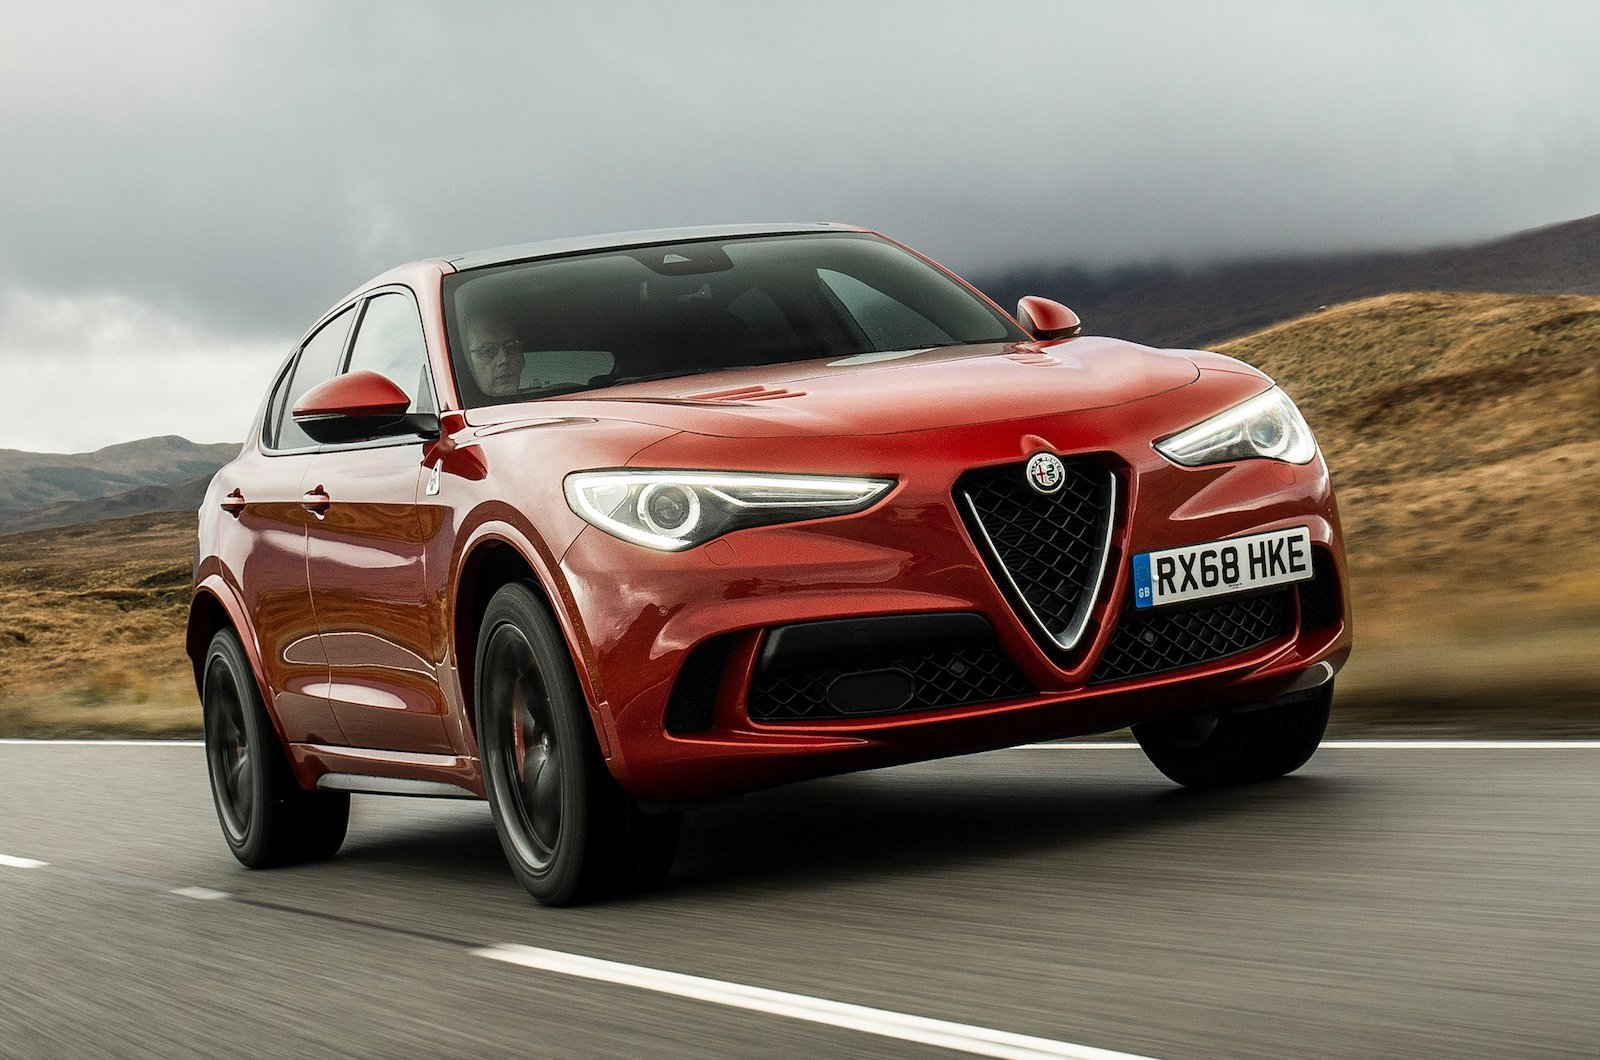 2019 alfa romeo stelvio quadrifoglio review - price, specs and